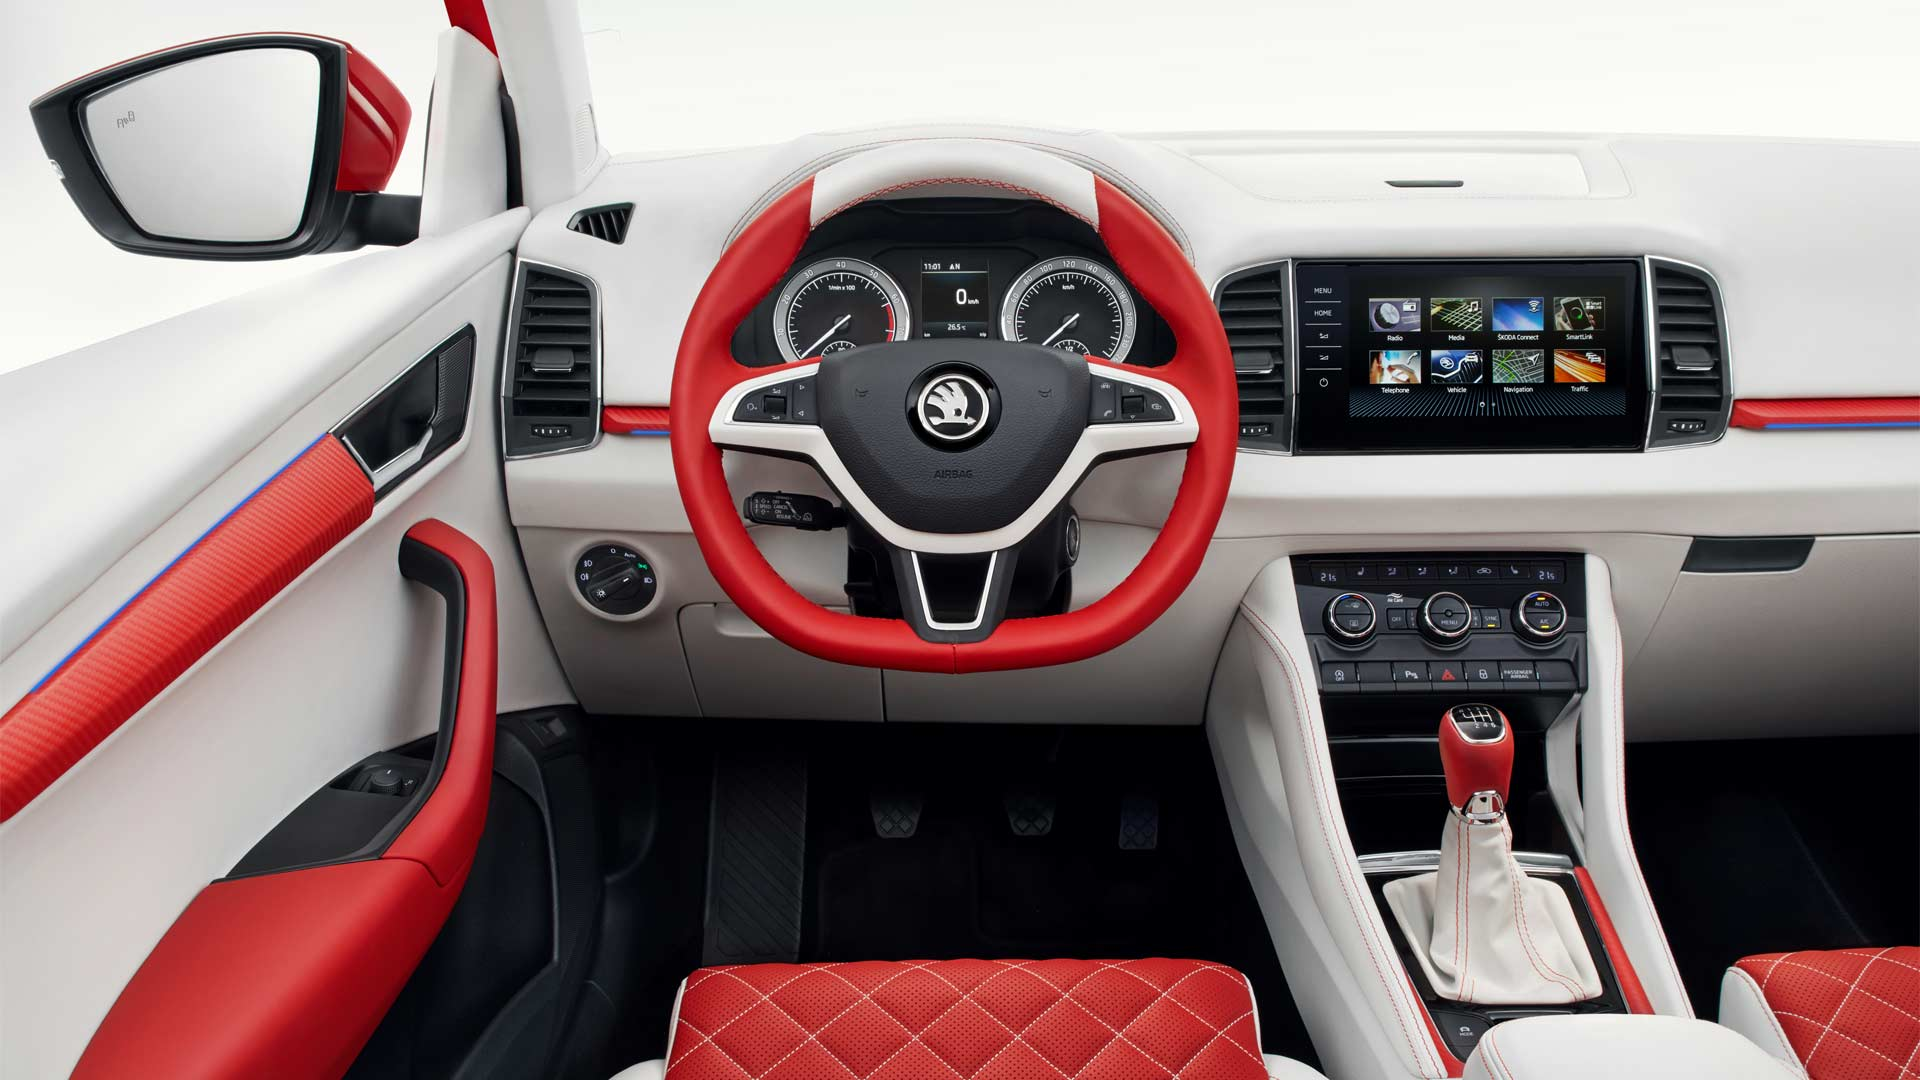 Skoda-Sunroq-interior